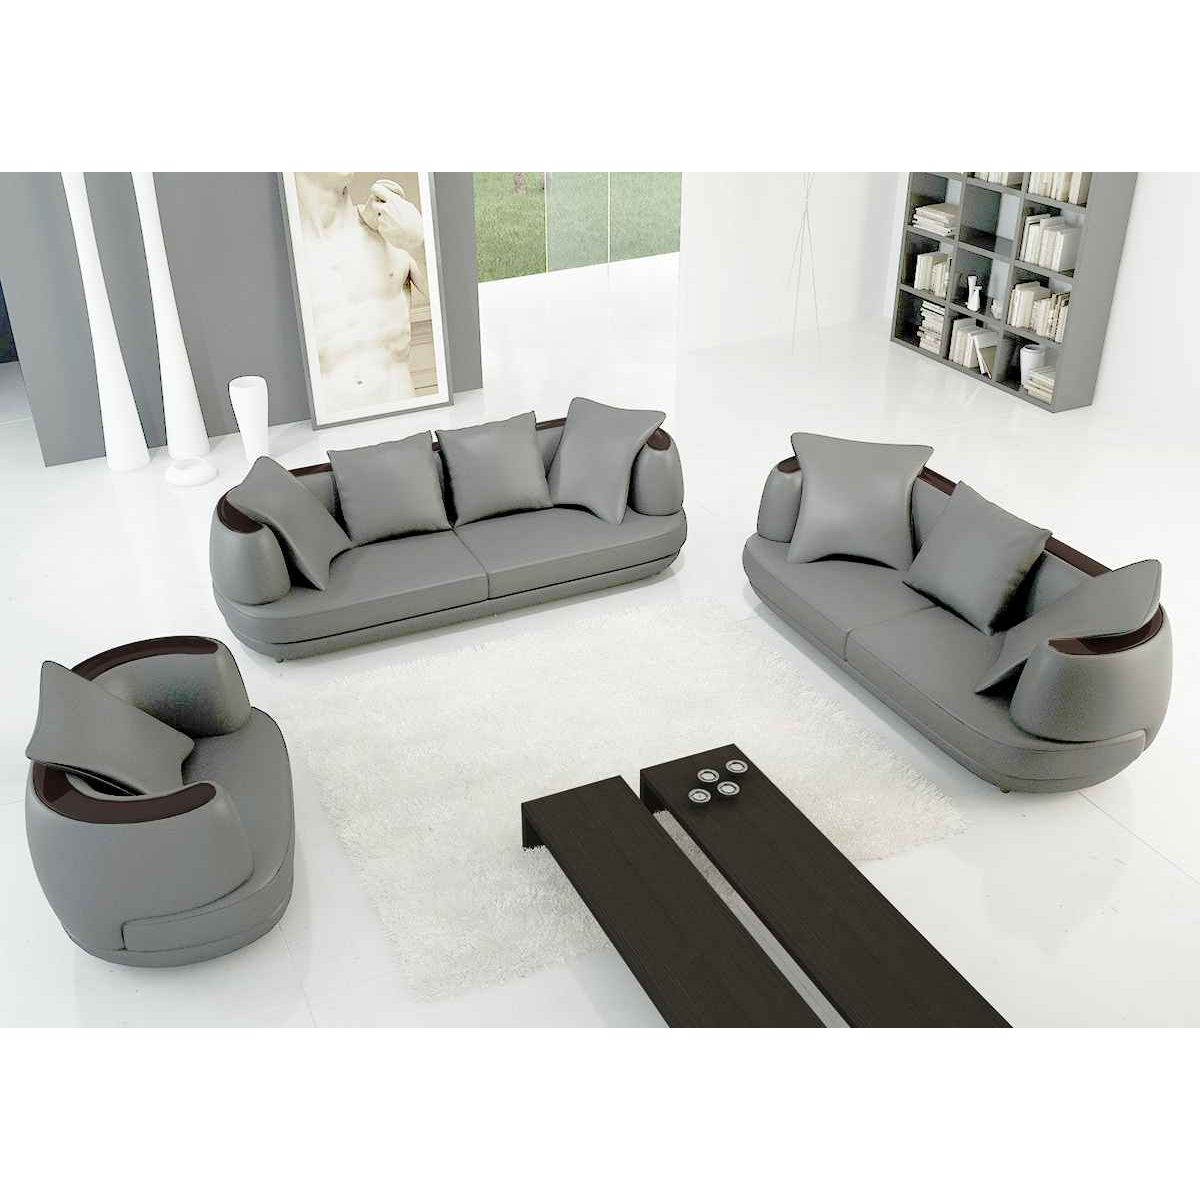 Deco in paris ensemble canape 3 2 1 places en cuir gris Canape 3 places gris